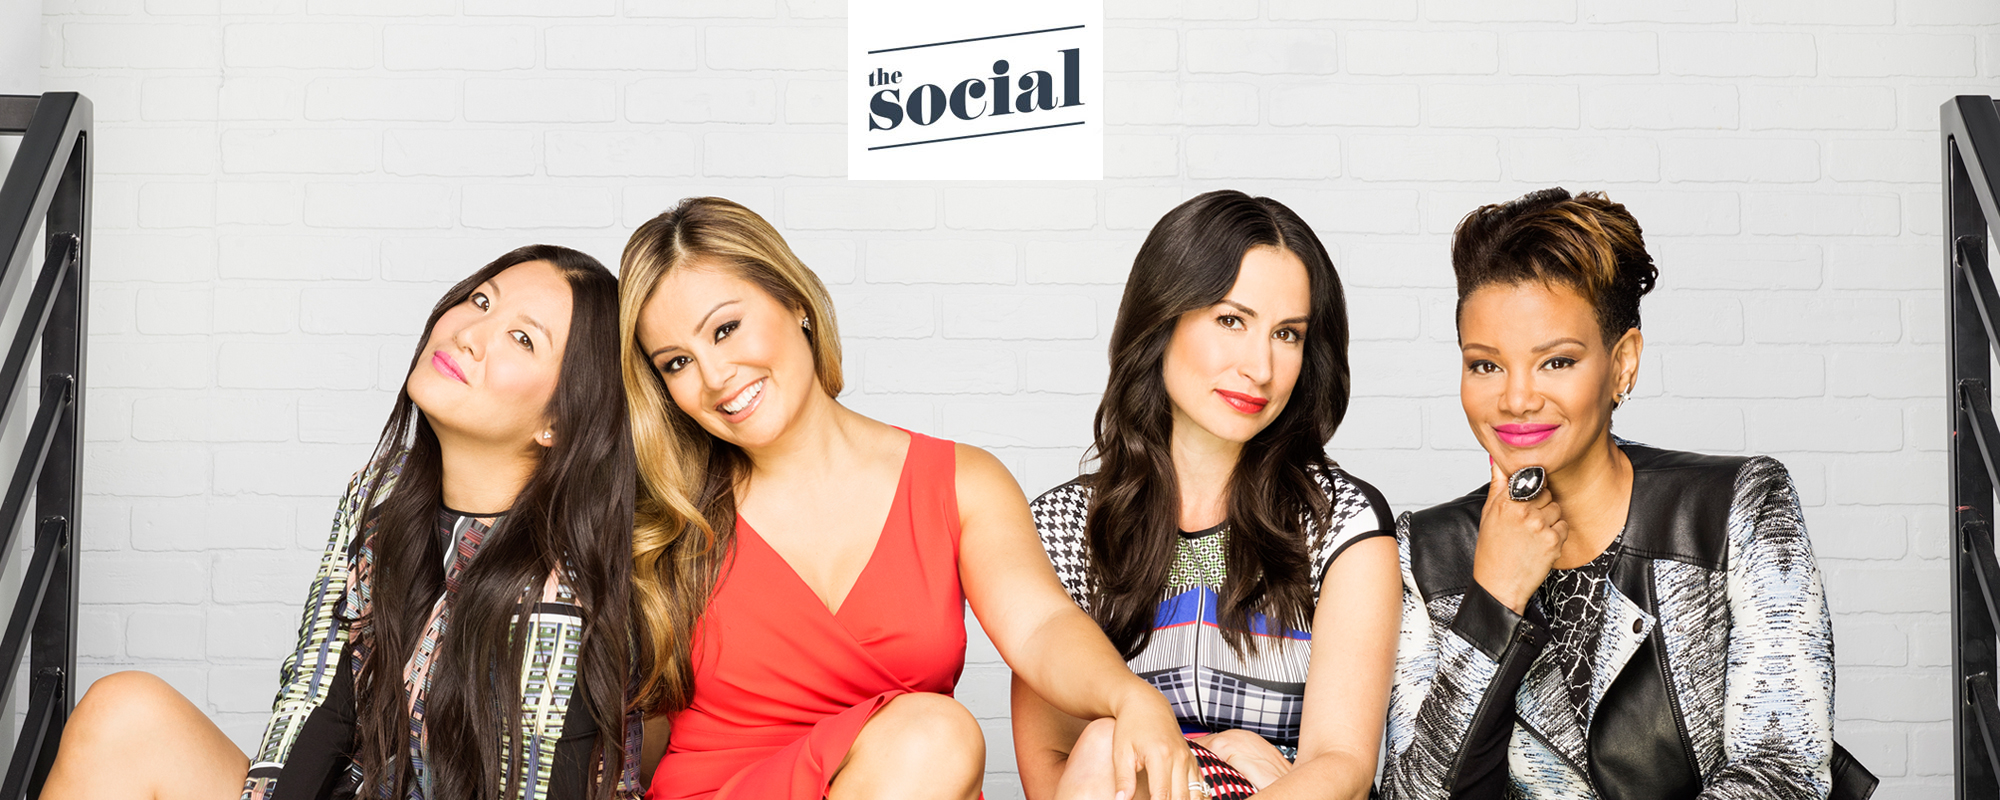 Check out The Twins' Latest Segment on The Social